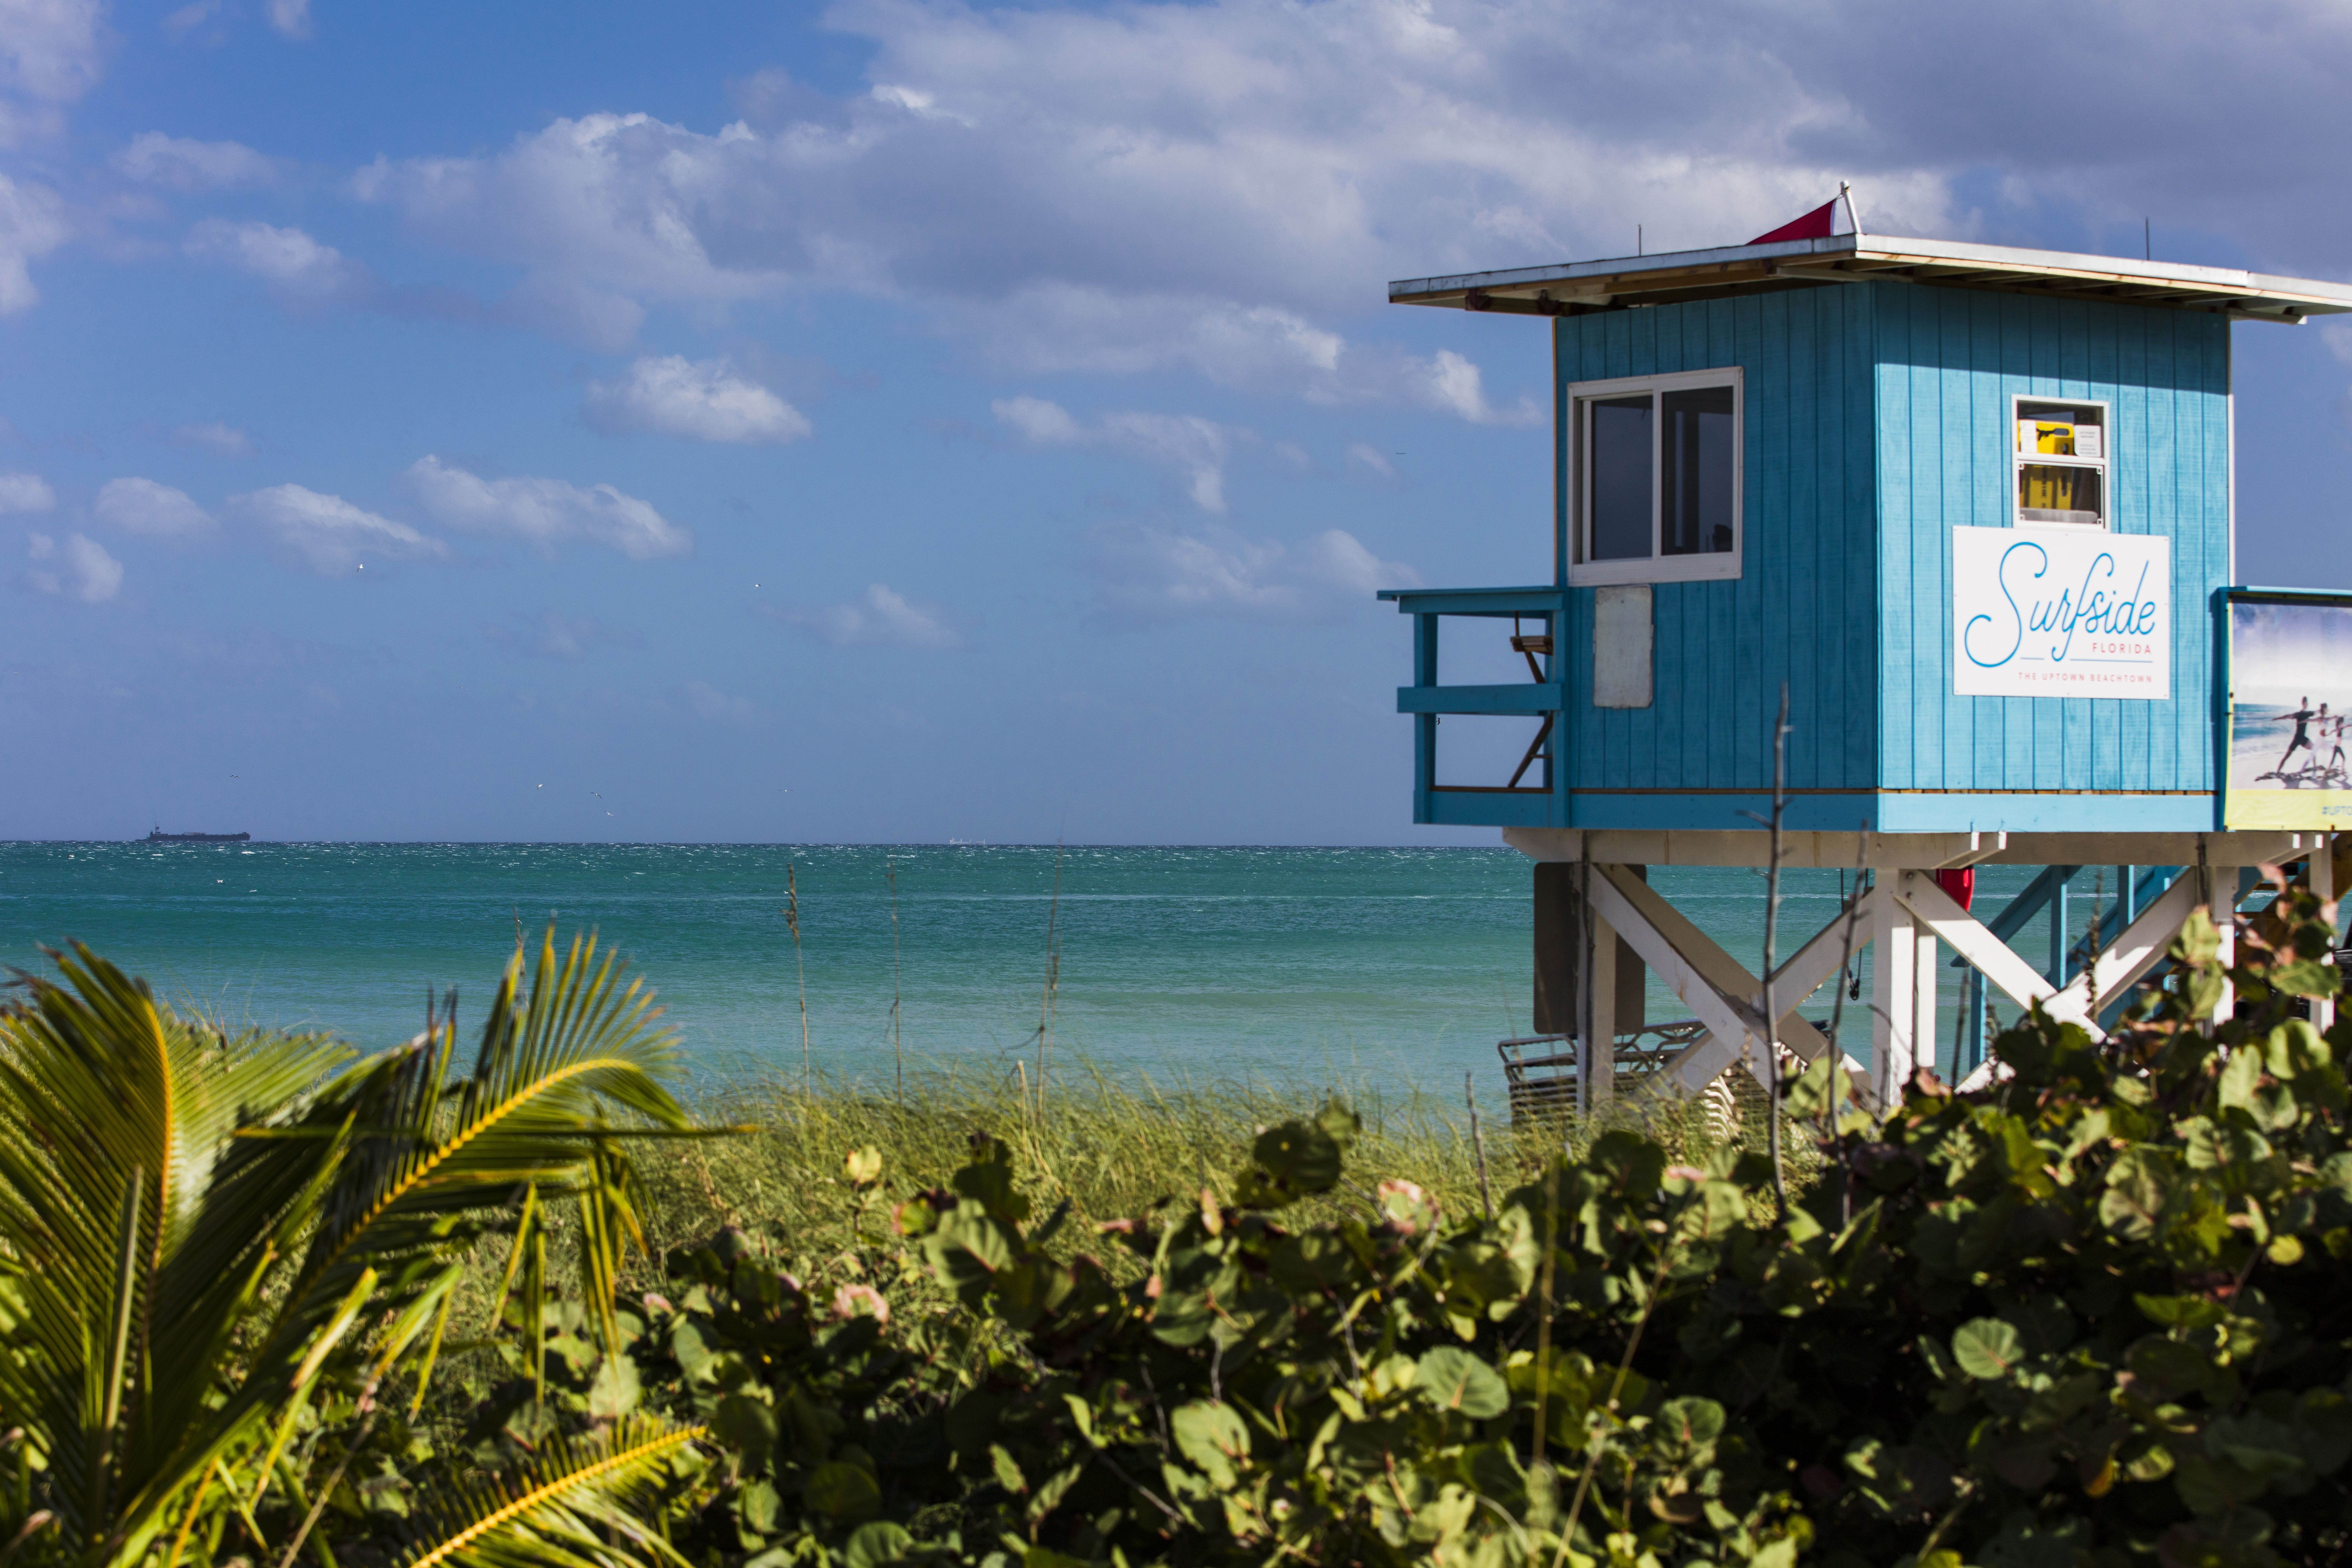 Lifeguard stand at Surfside beach in Miami